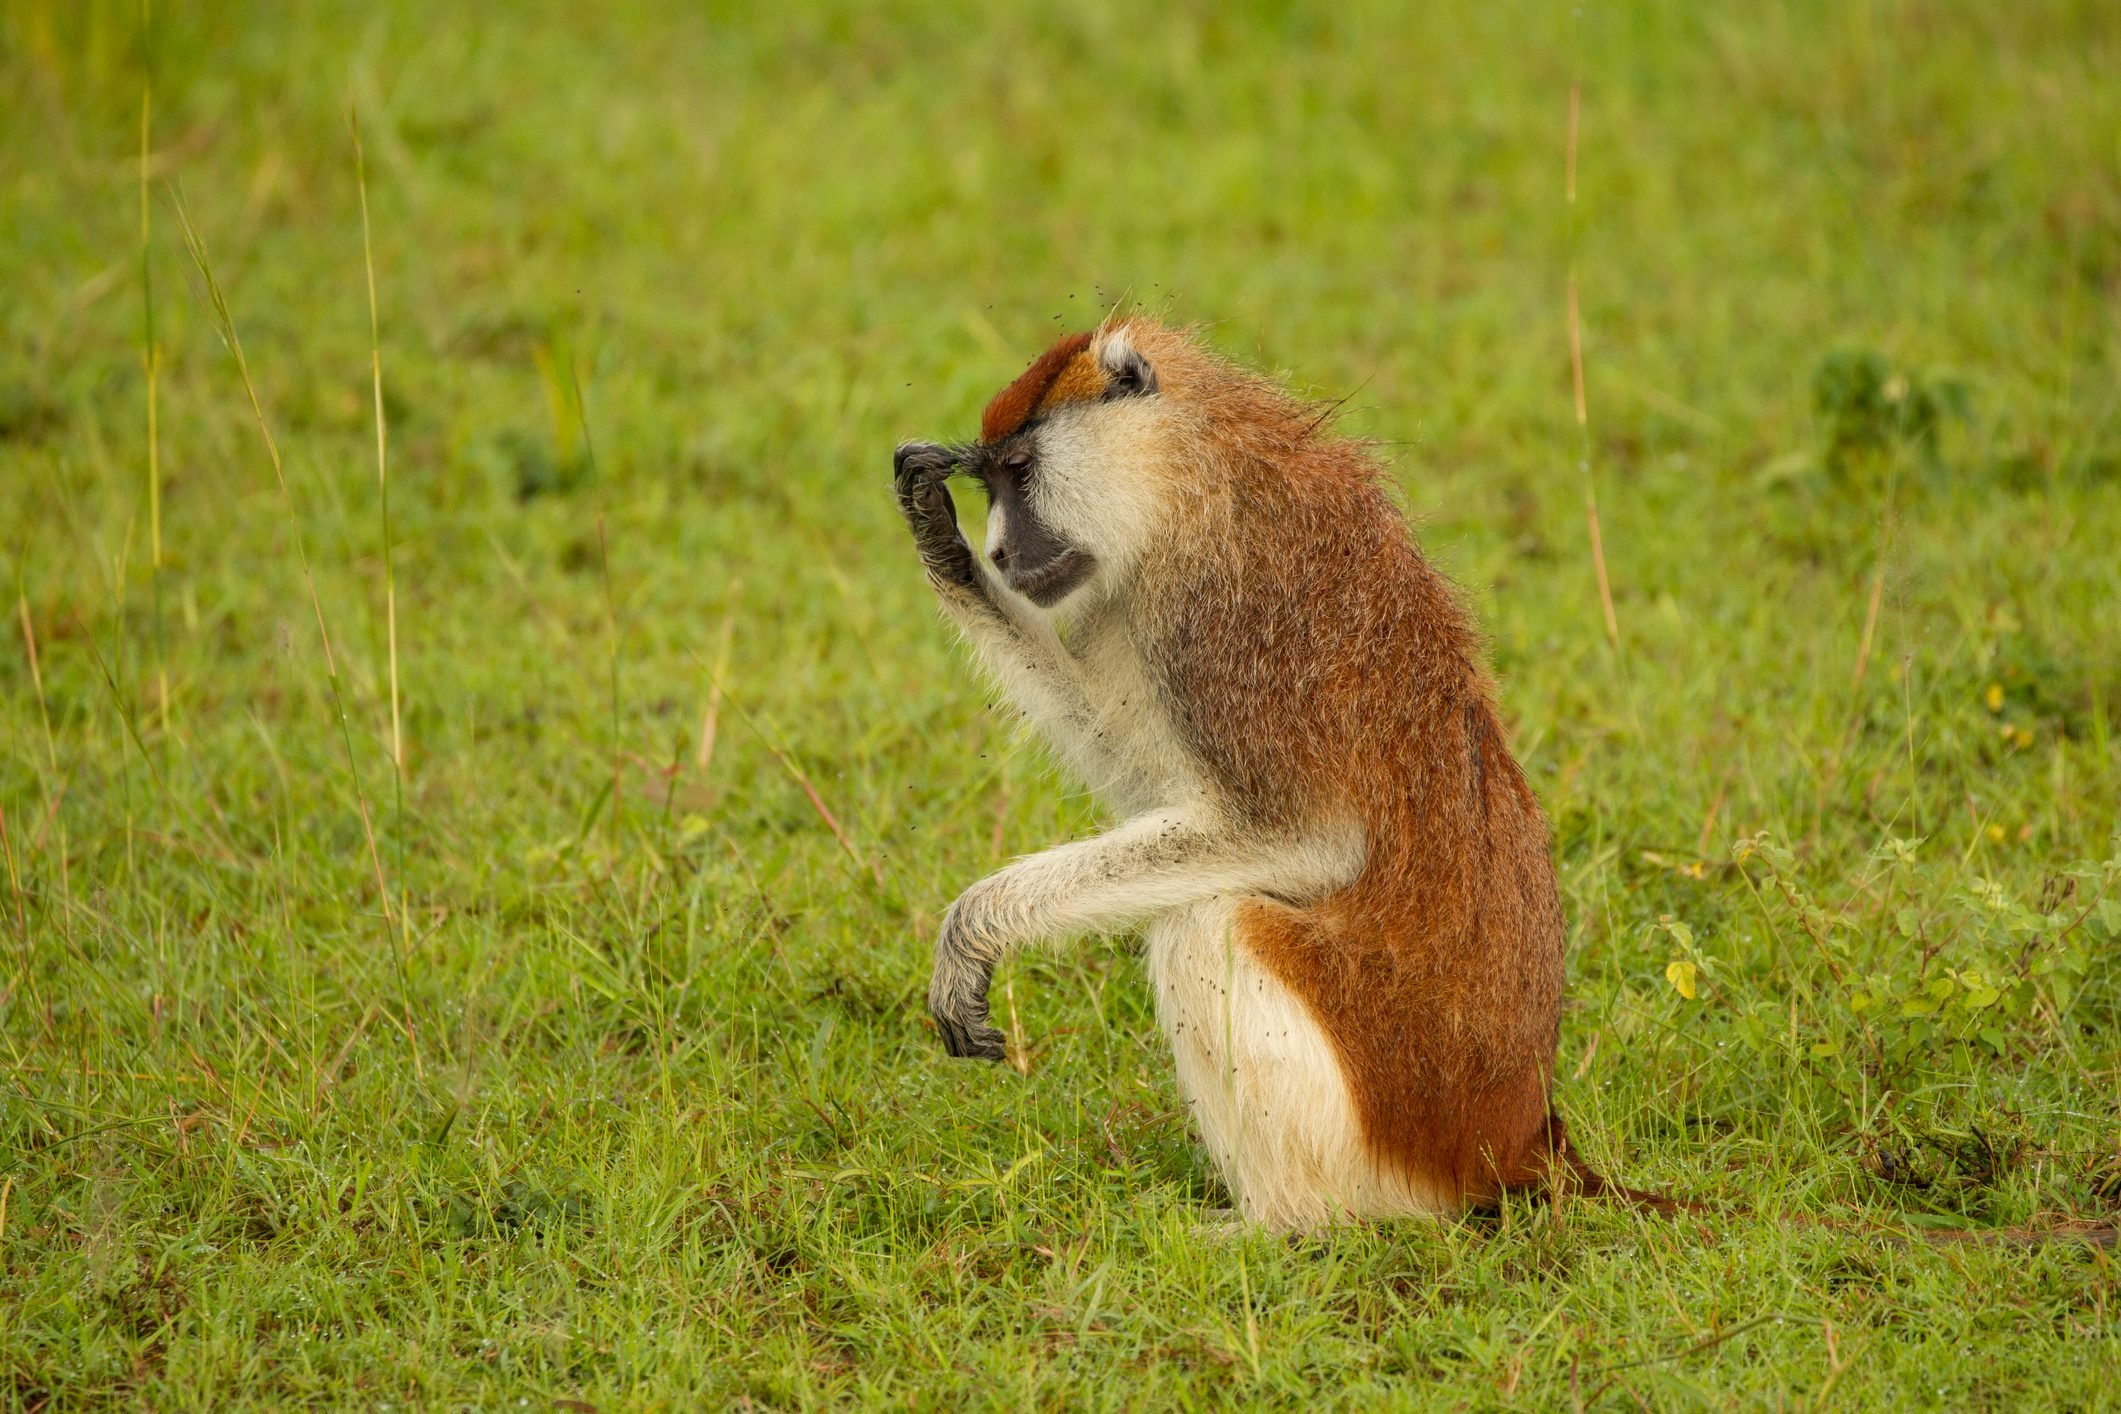 Patas Monkey (erythrocebus patas) sitting up with hand on forehead, portrait, Murchison Falls National Park, Uganda